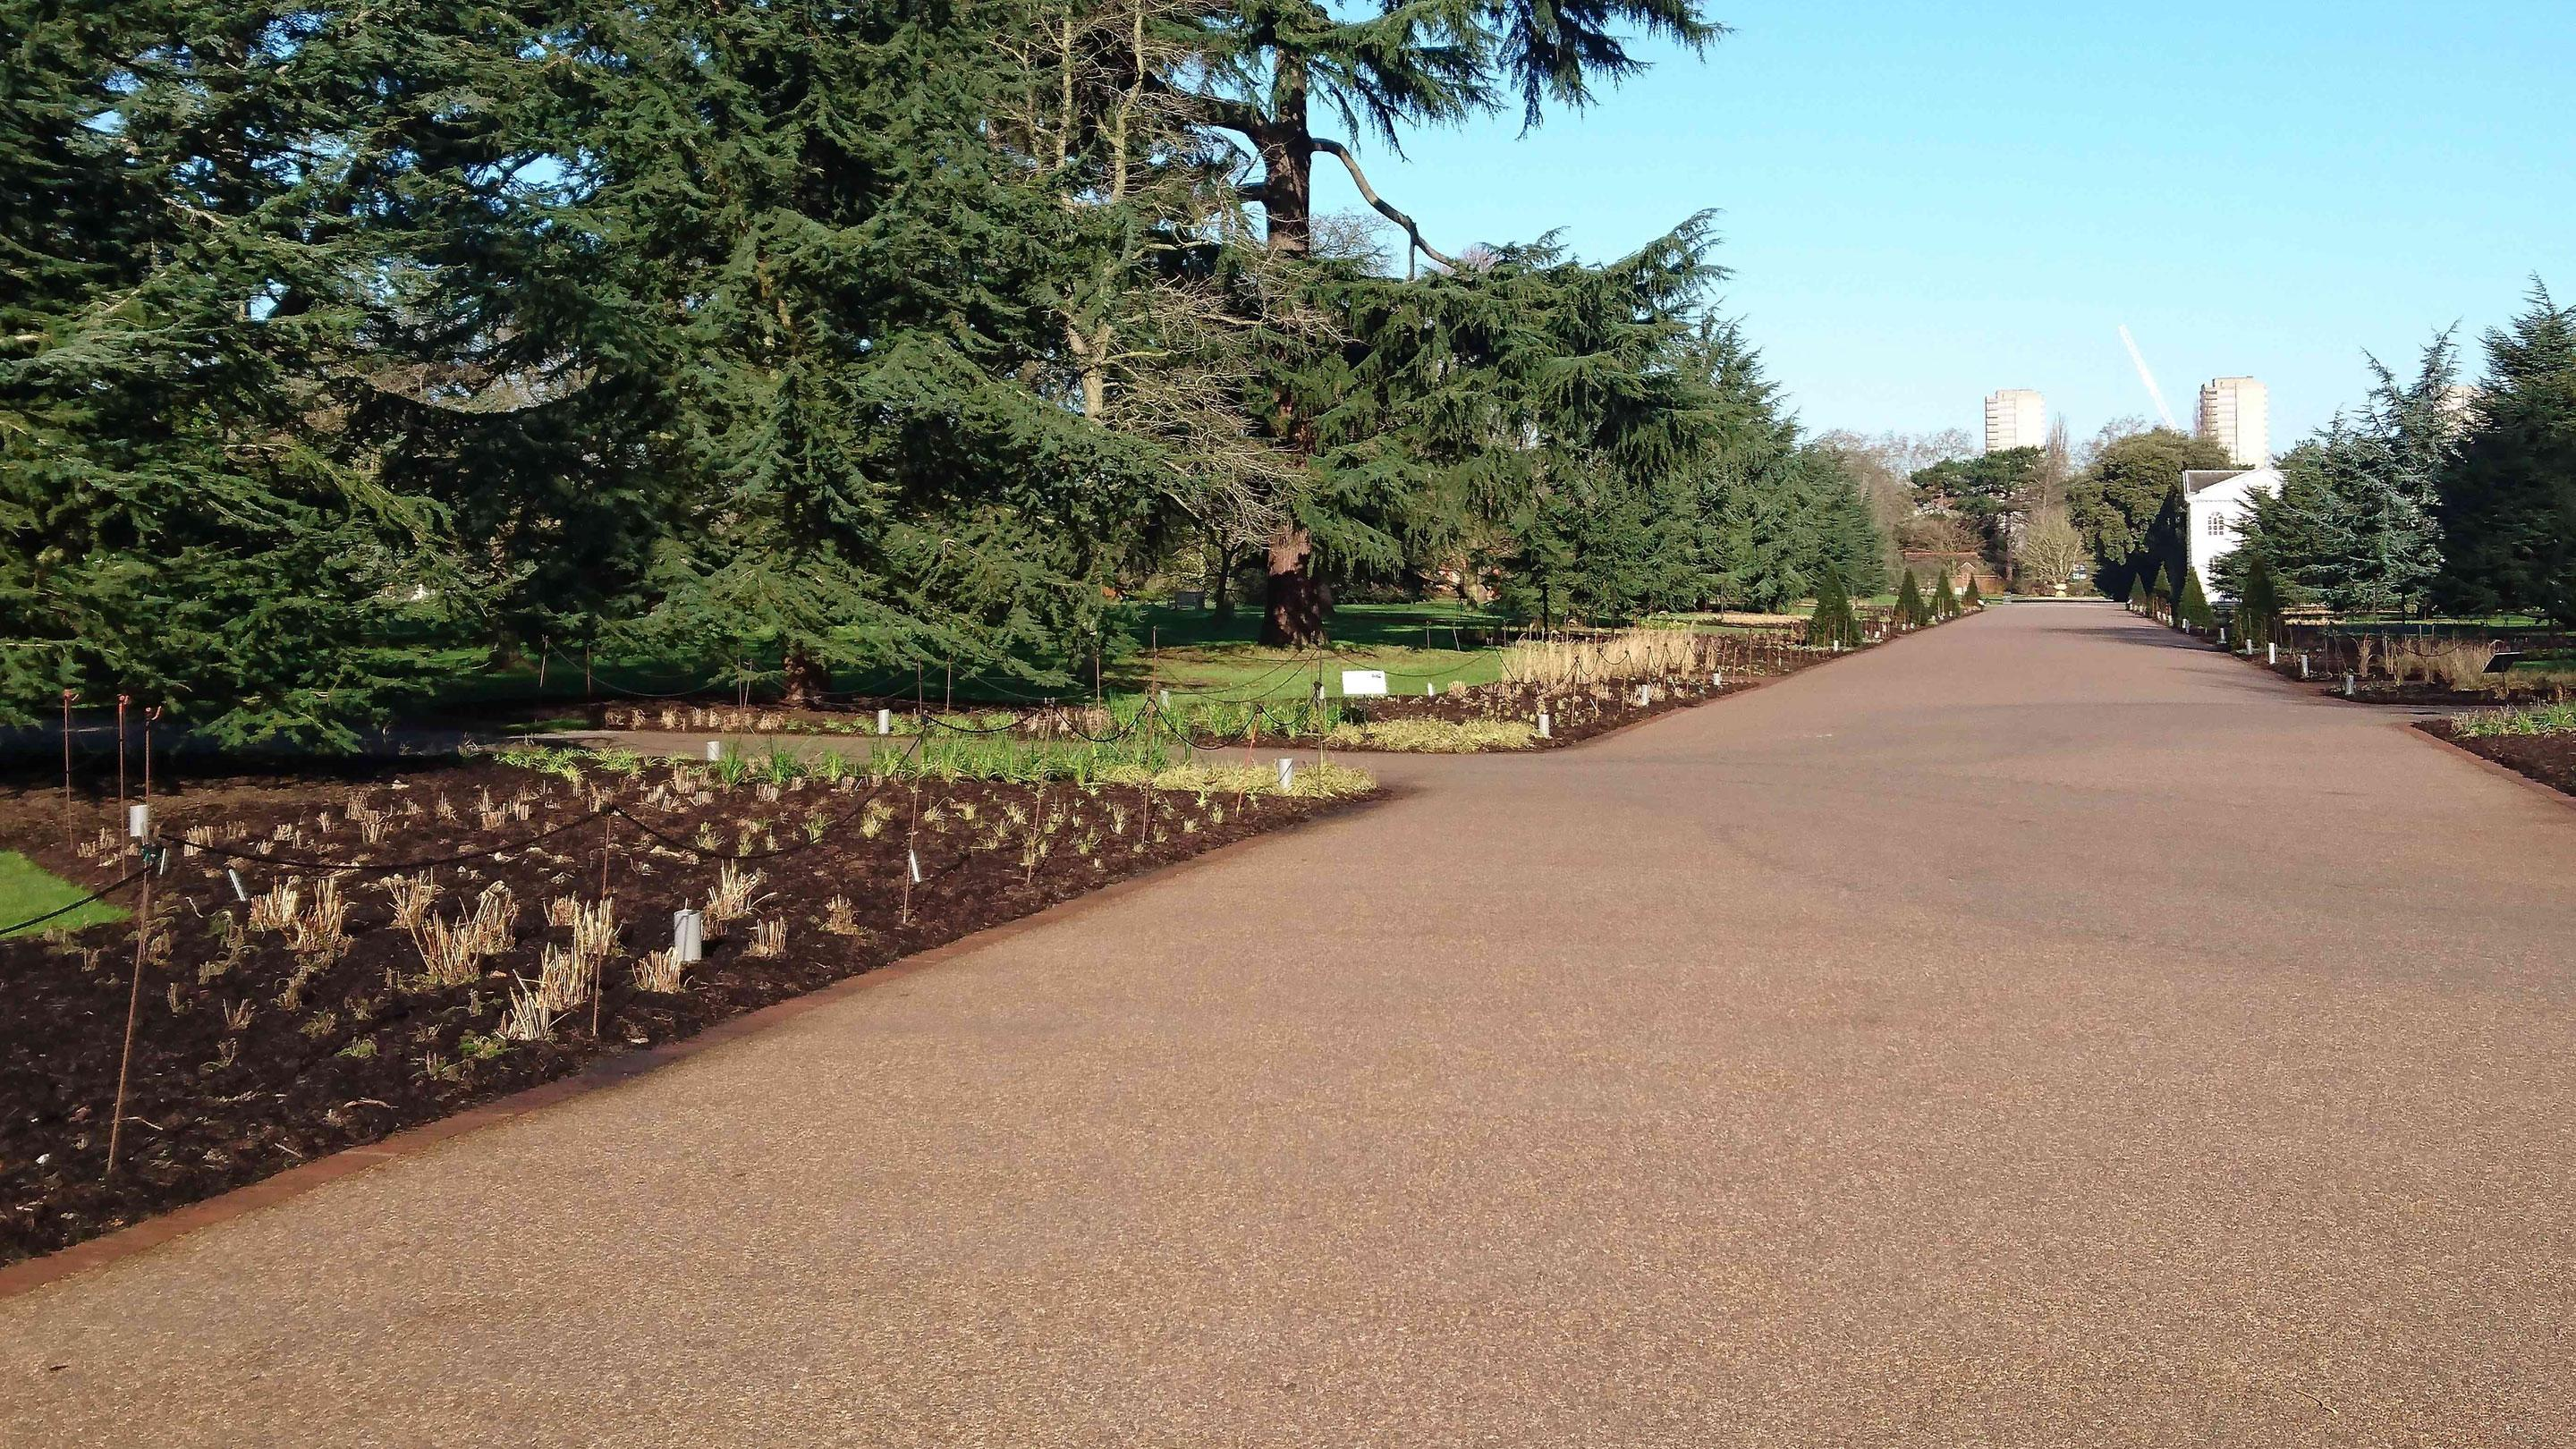 Preparing the Broadwalk Borders for planting